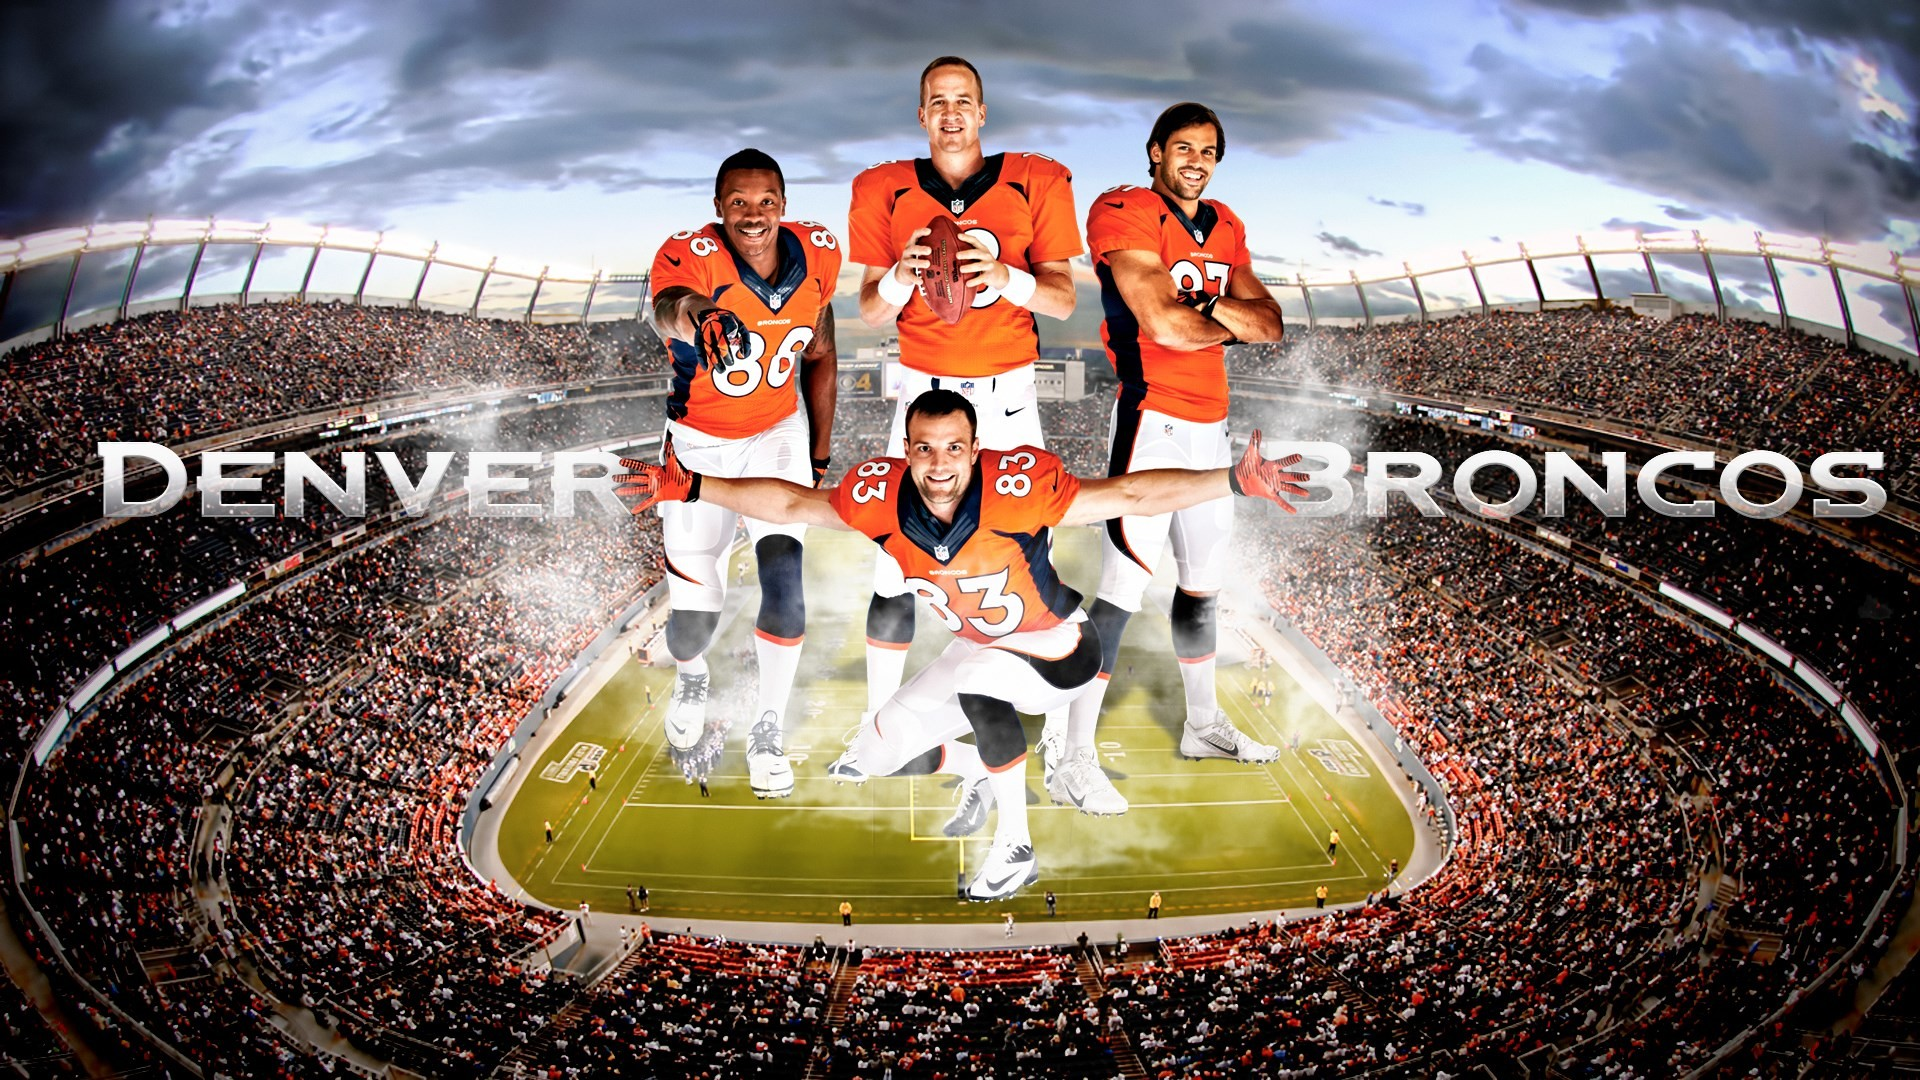 denver broncos computer wallpaper backgrounds